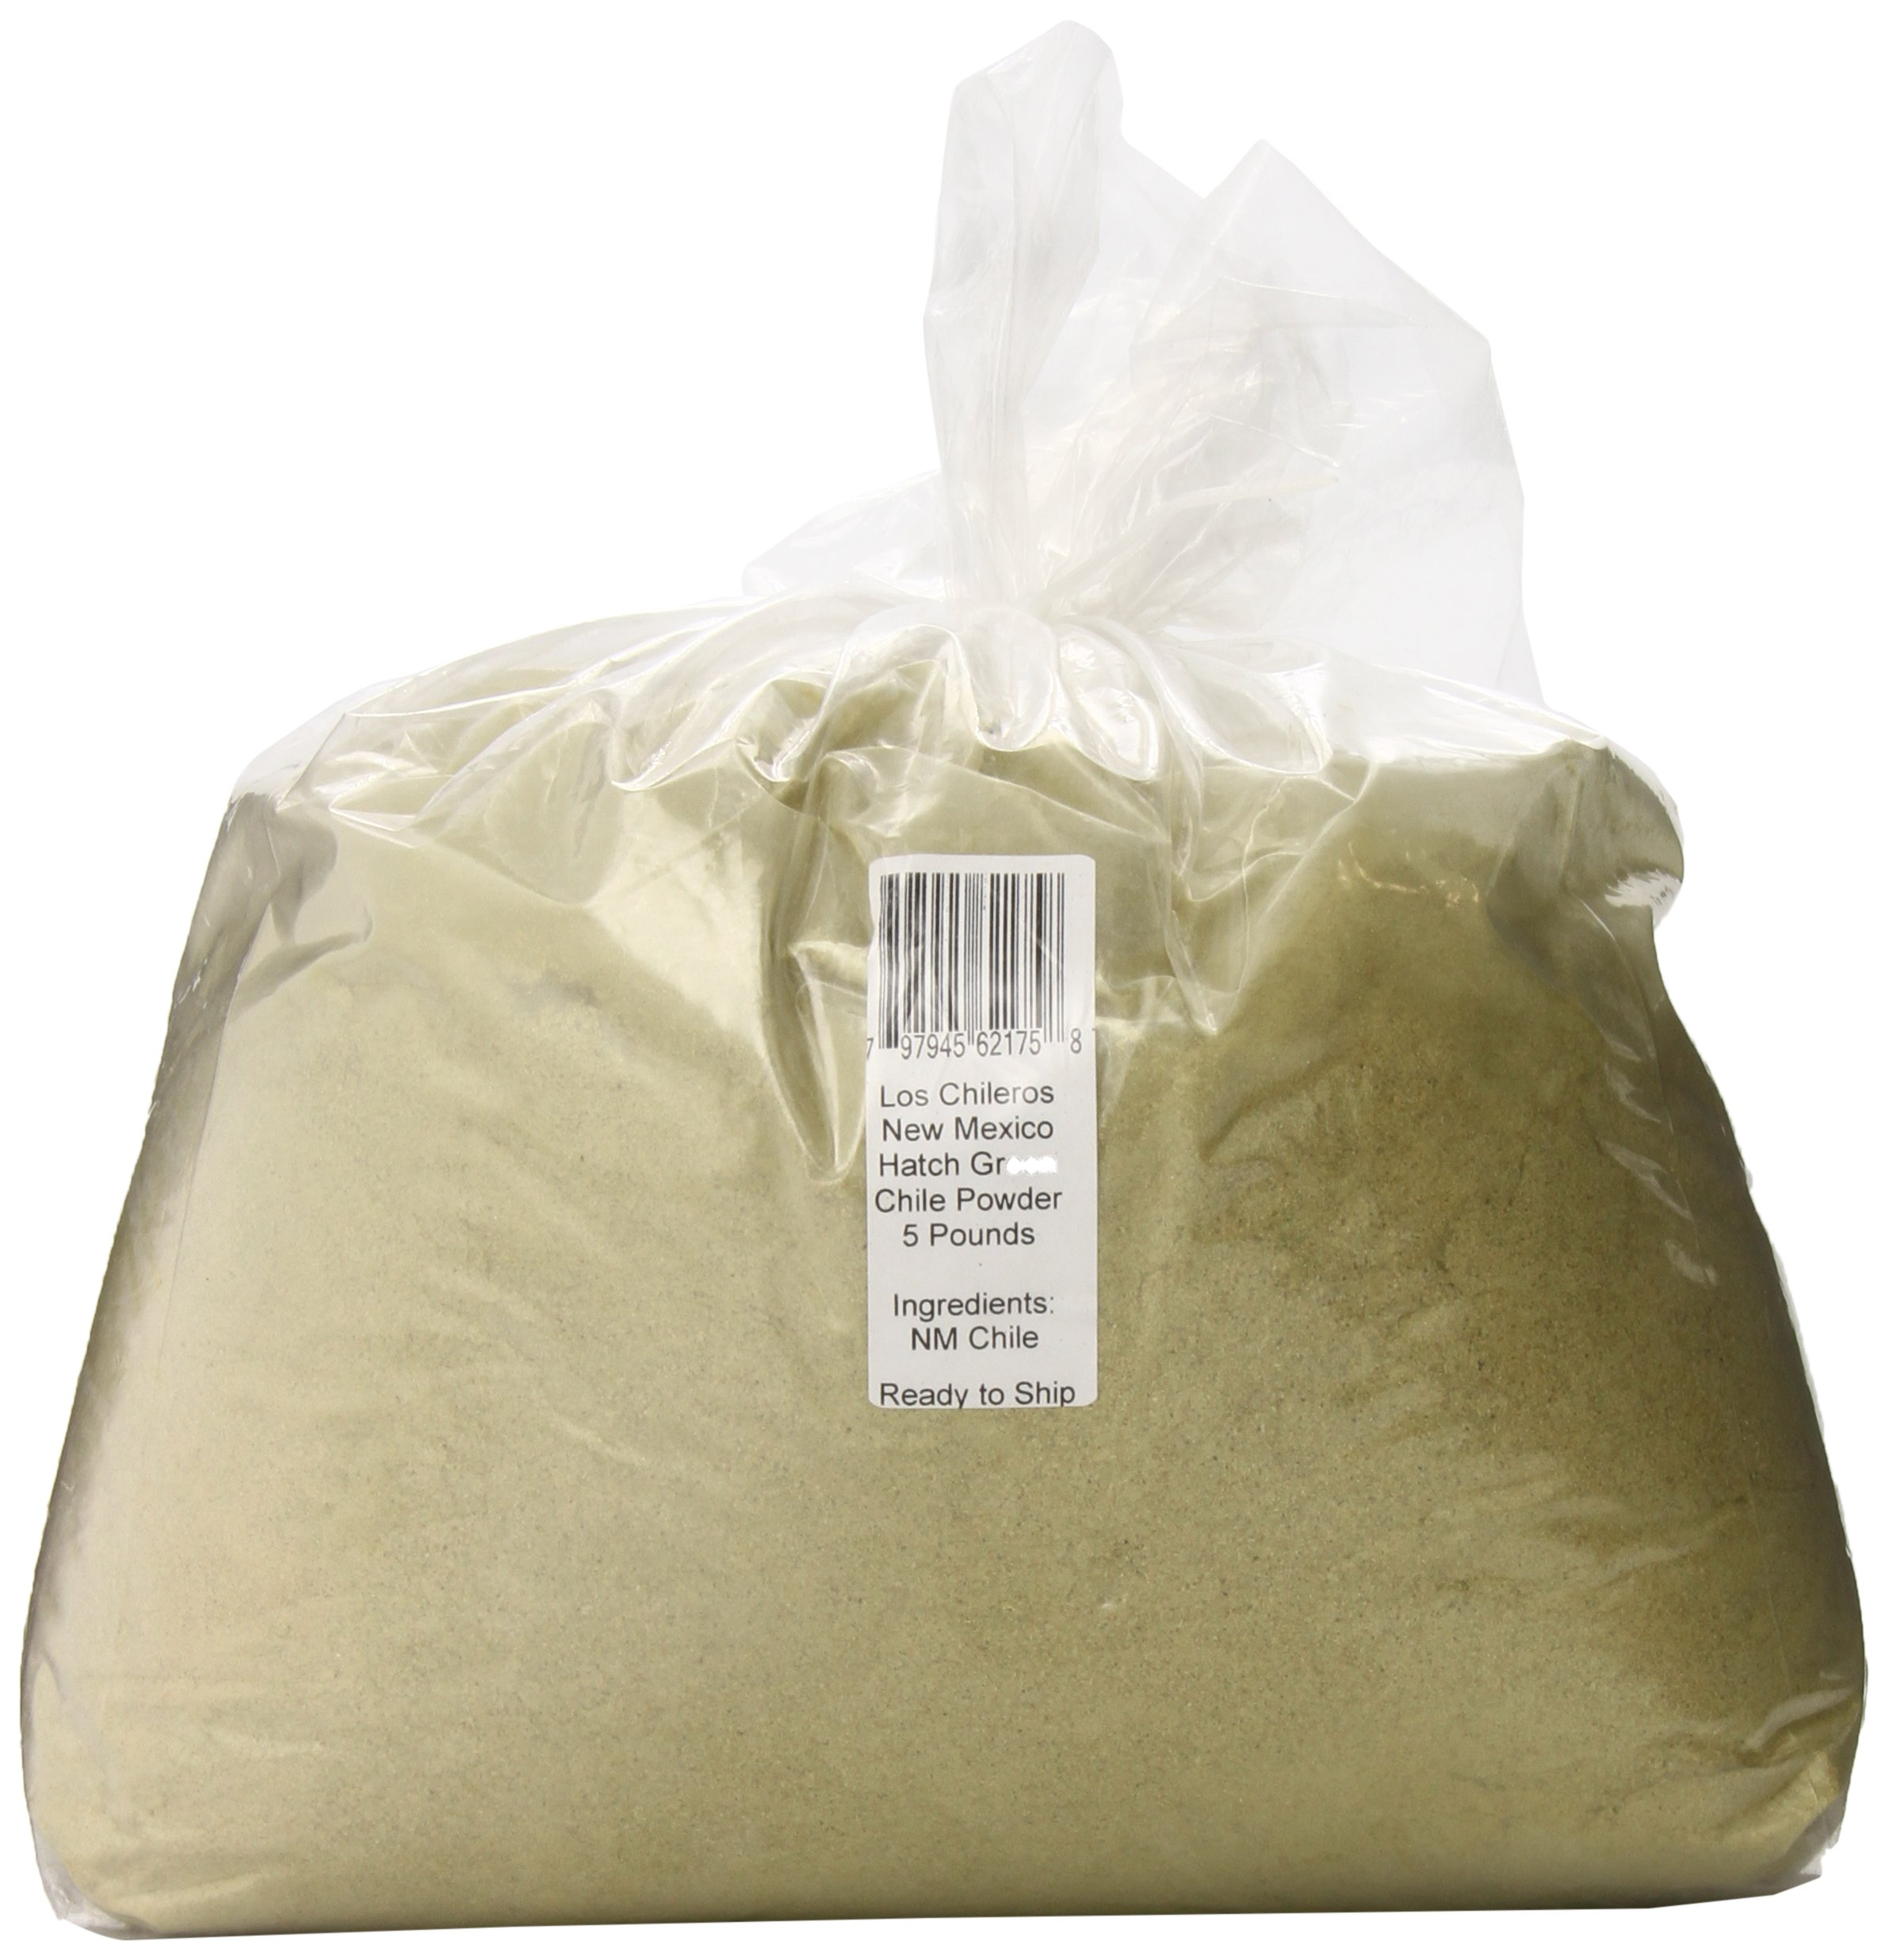 Los Chileros New Mexico Hatch Green Chile, Powder, 5 Pound